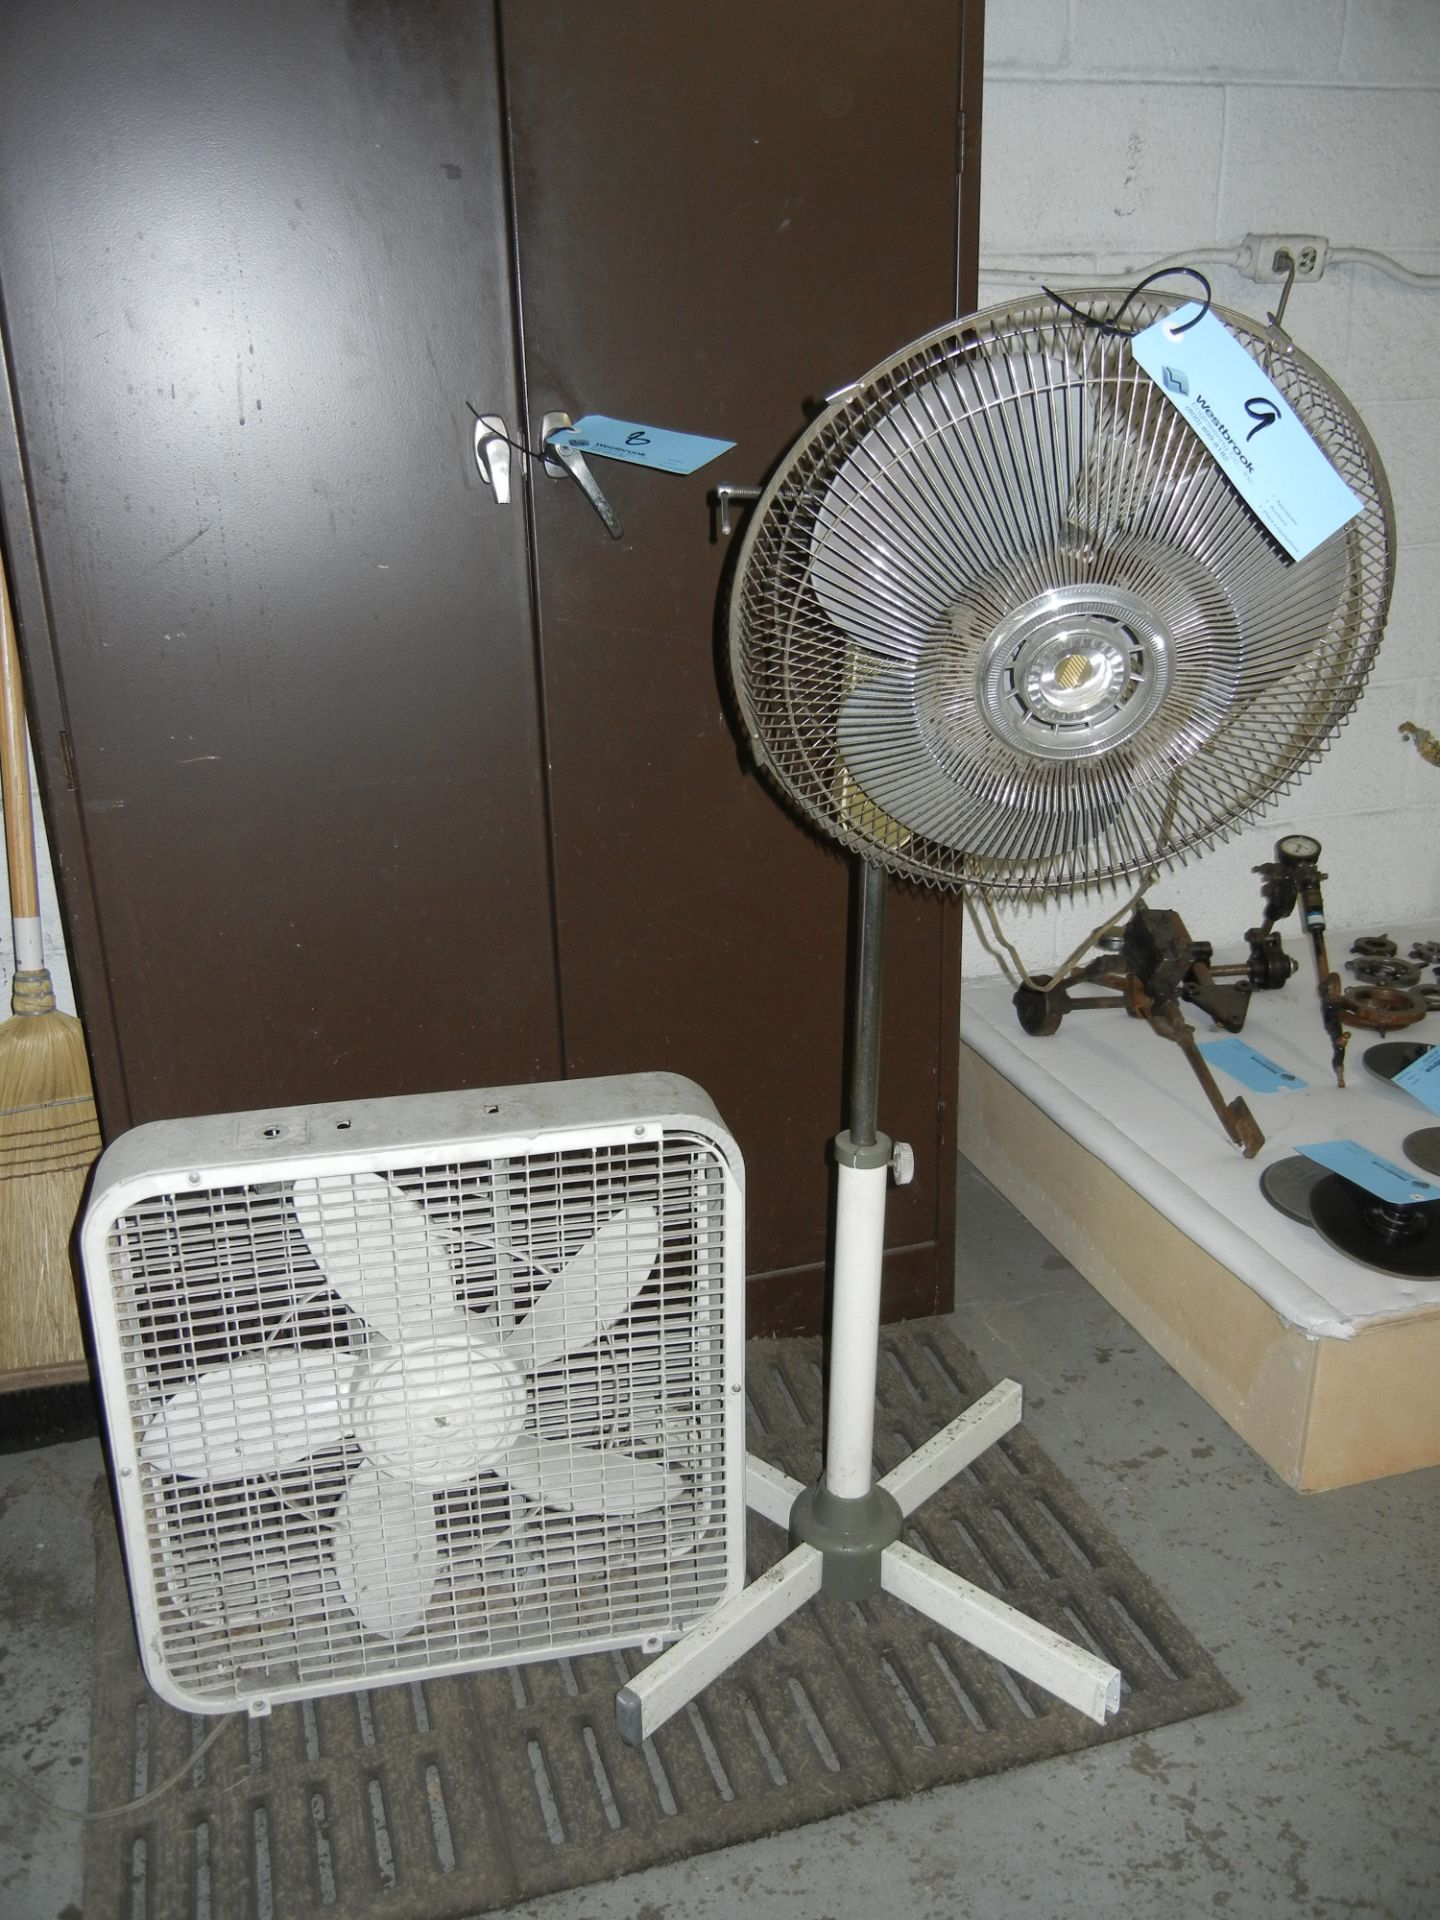 Two misc fans